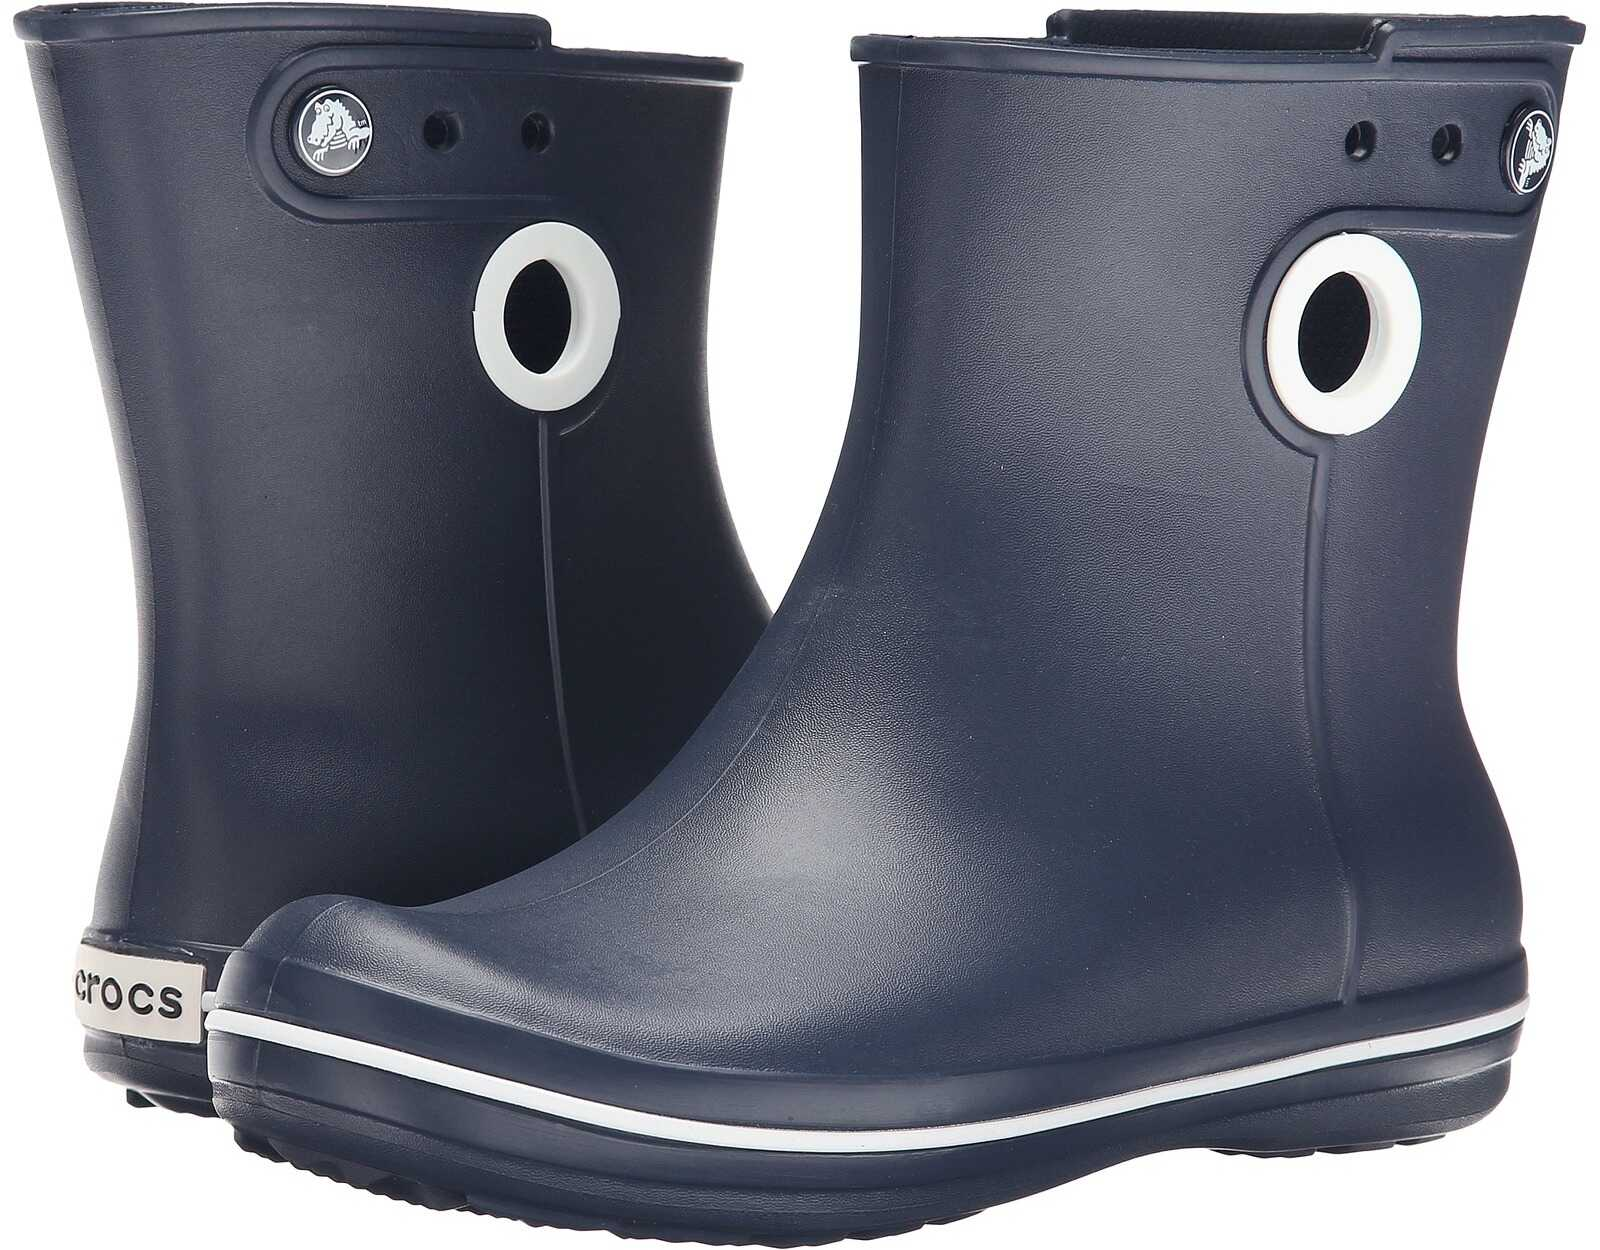 Crocs Jaunt Shorty Boot Navy